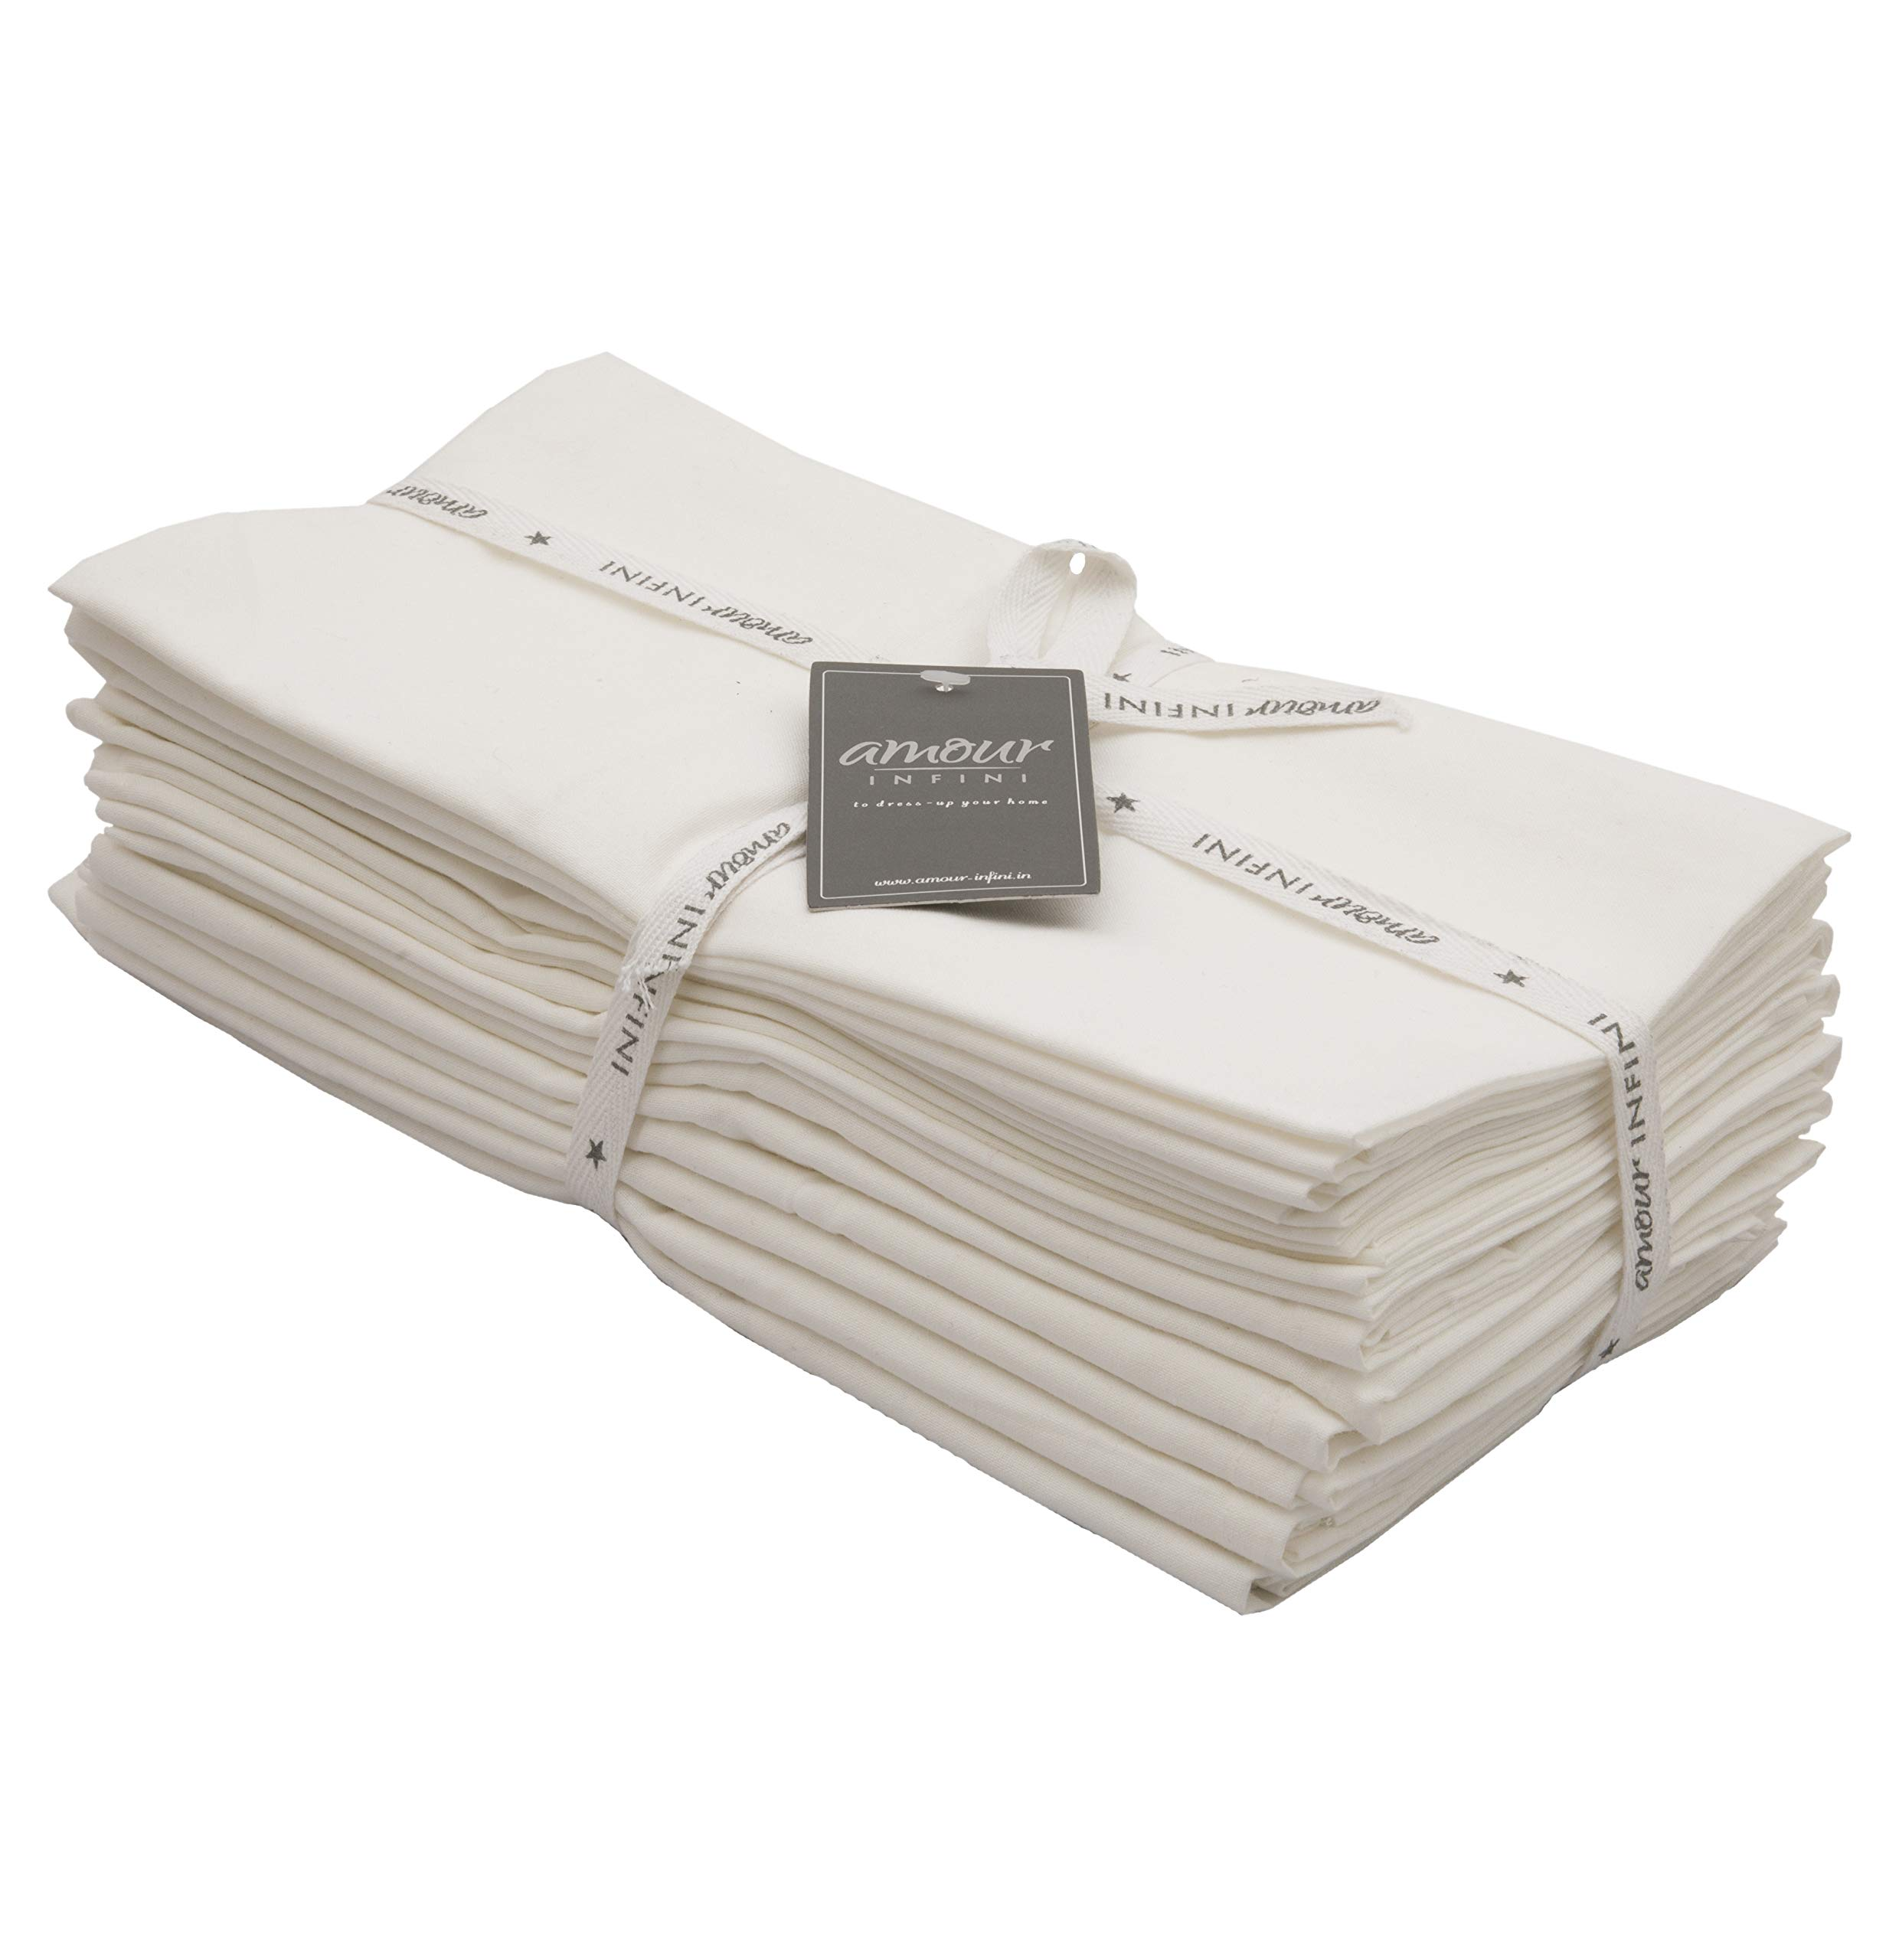 Amour Infini Flour Sack Towels Off White  12 Pack   28 x 28 Inch   Multi-use Kitchen Towels, Dish Towels, Cloth Napkins  100% Ring Spun Cotton   Highly Absorbent Tea Towels for Embroidery